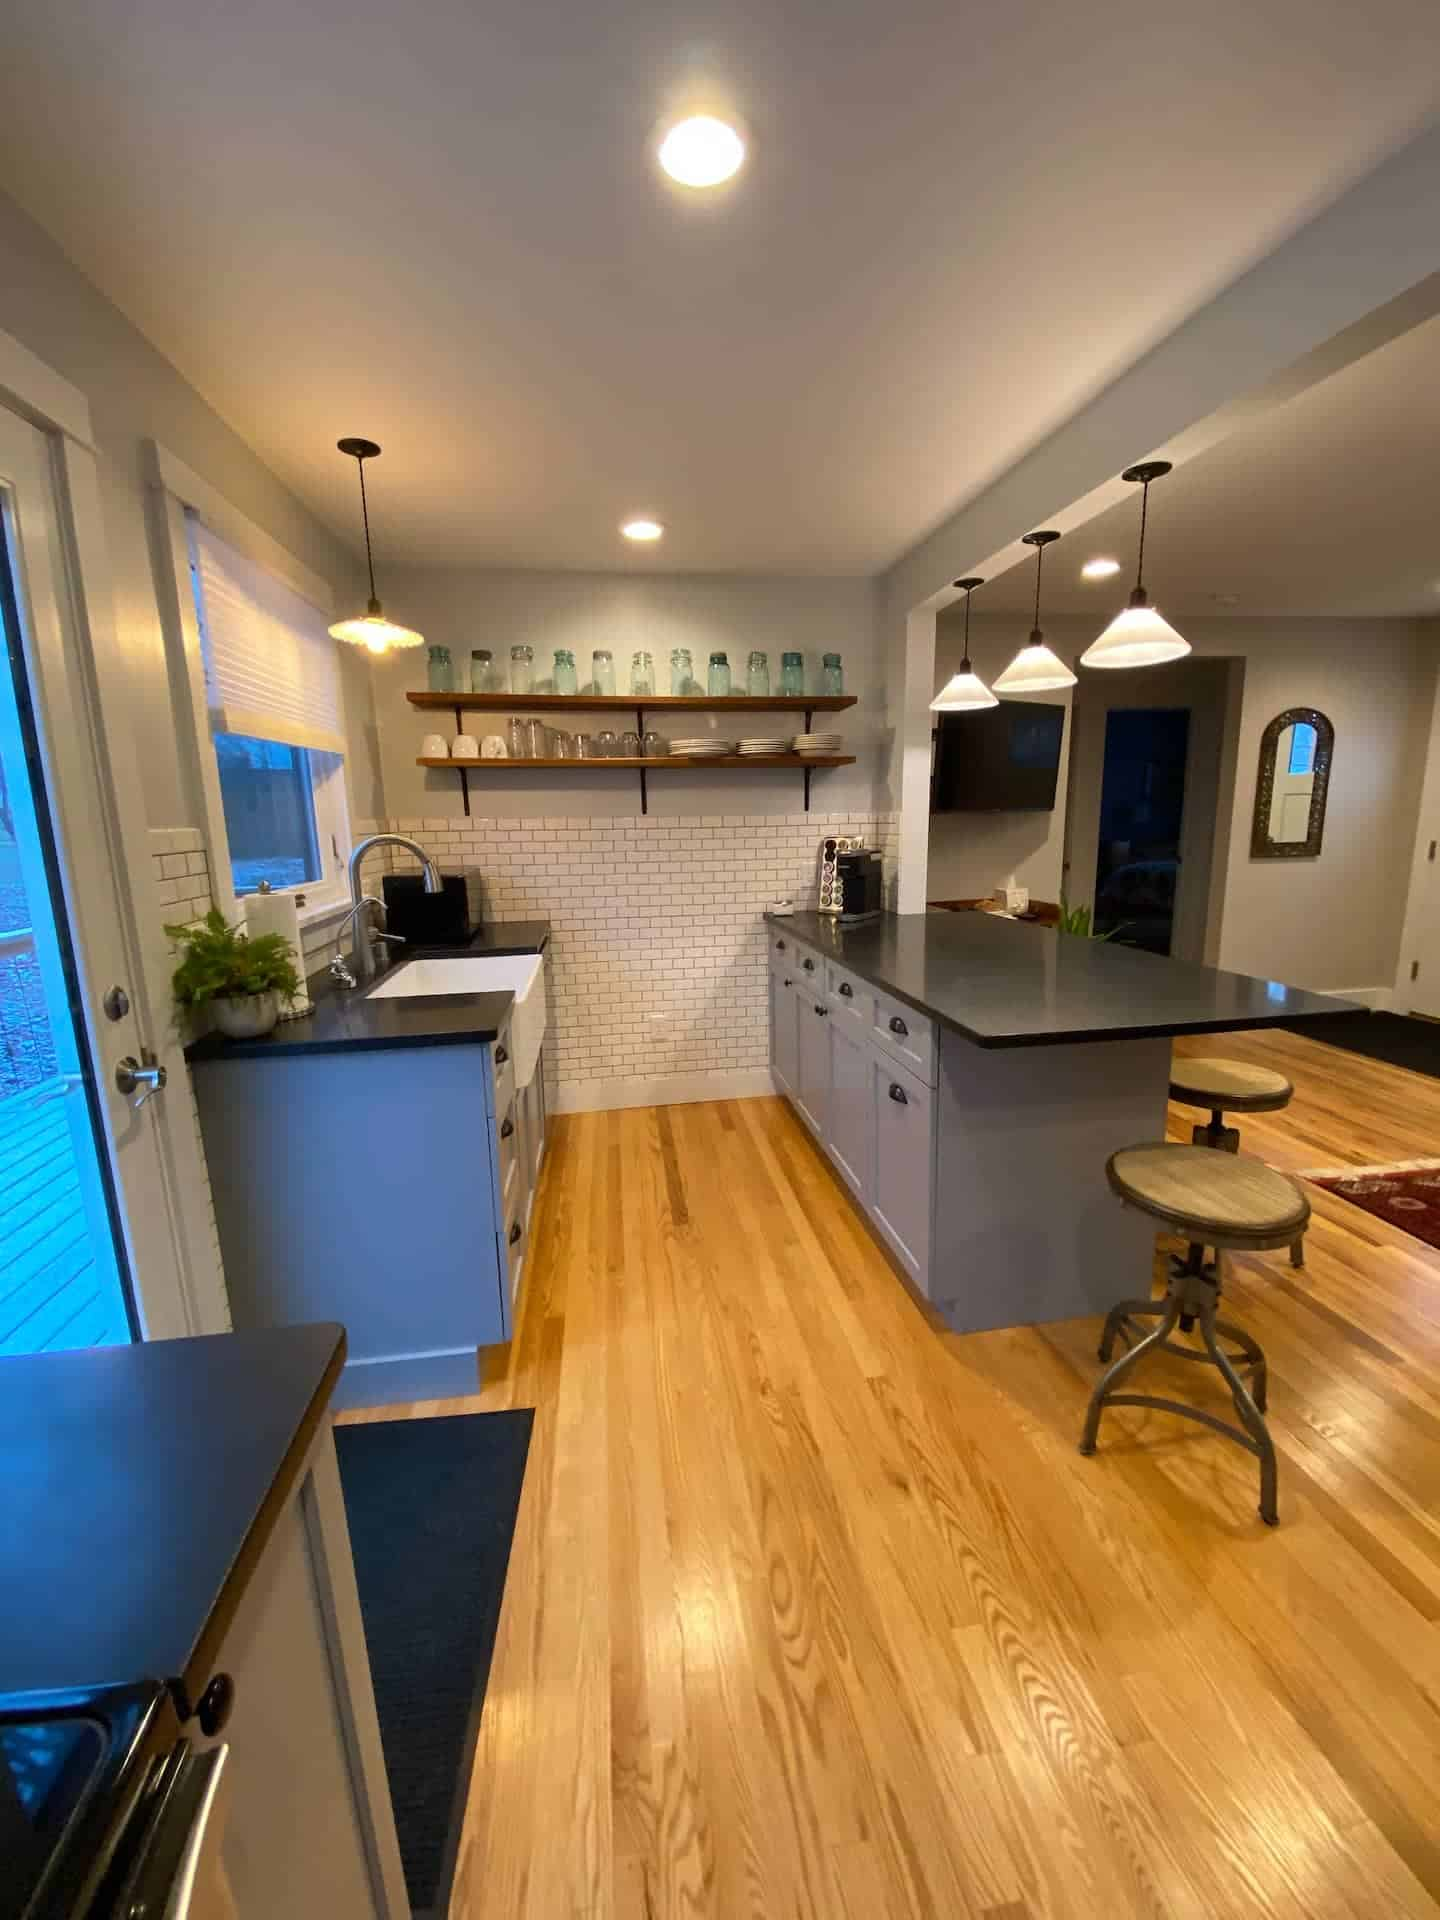 Image of Airbnb rental in Ithaca, New York